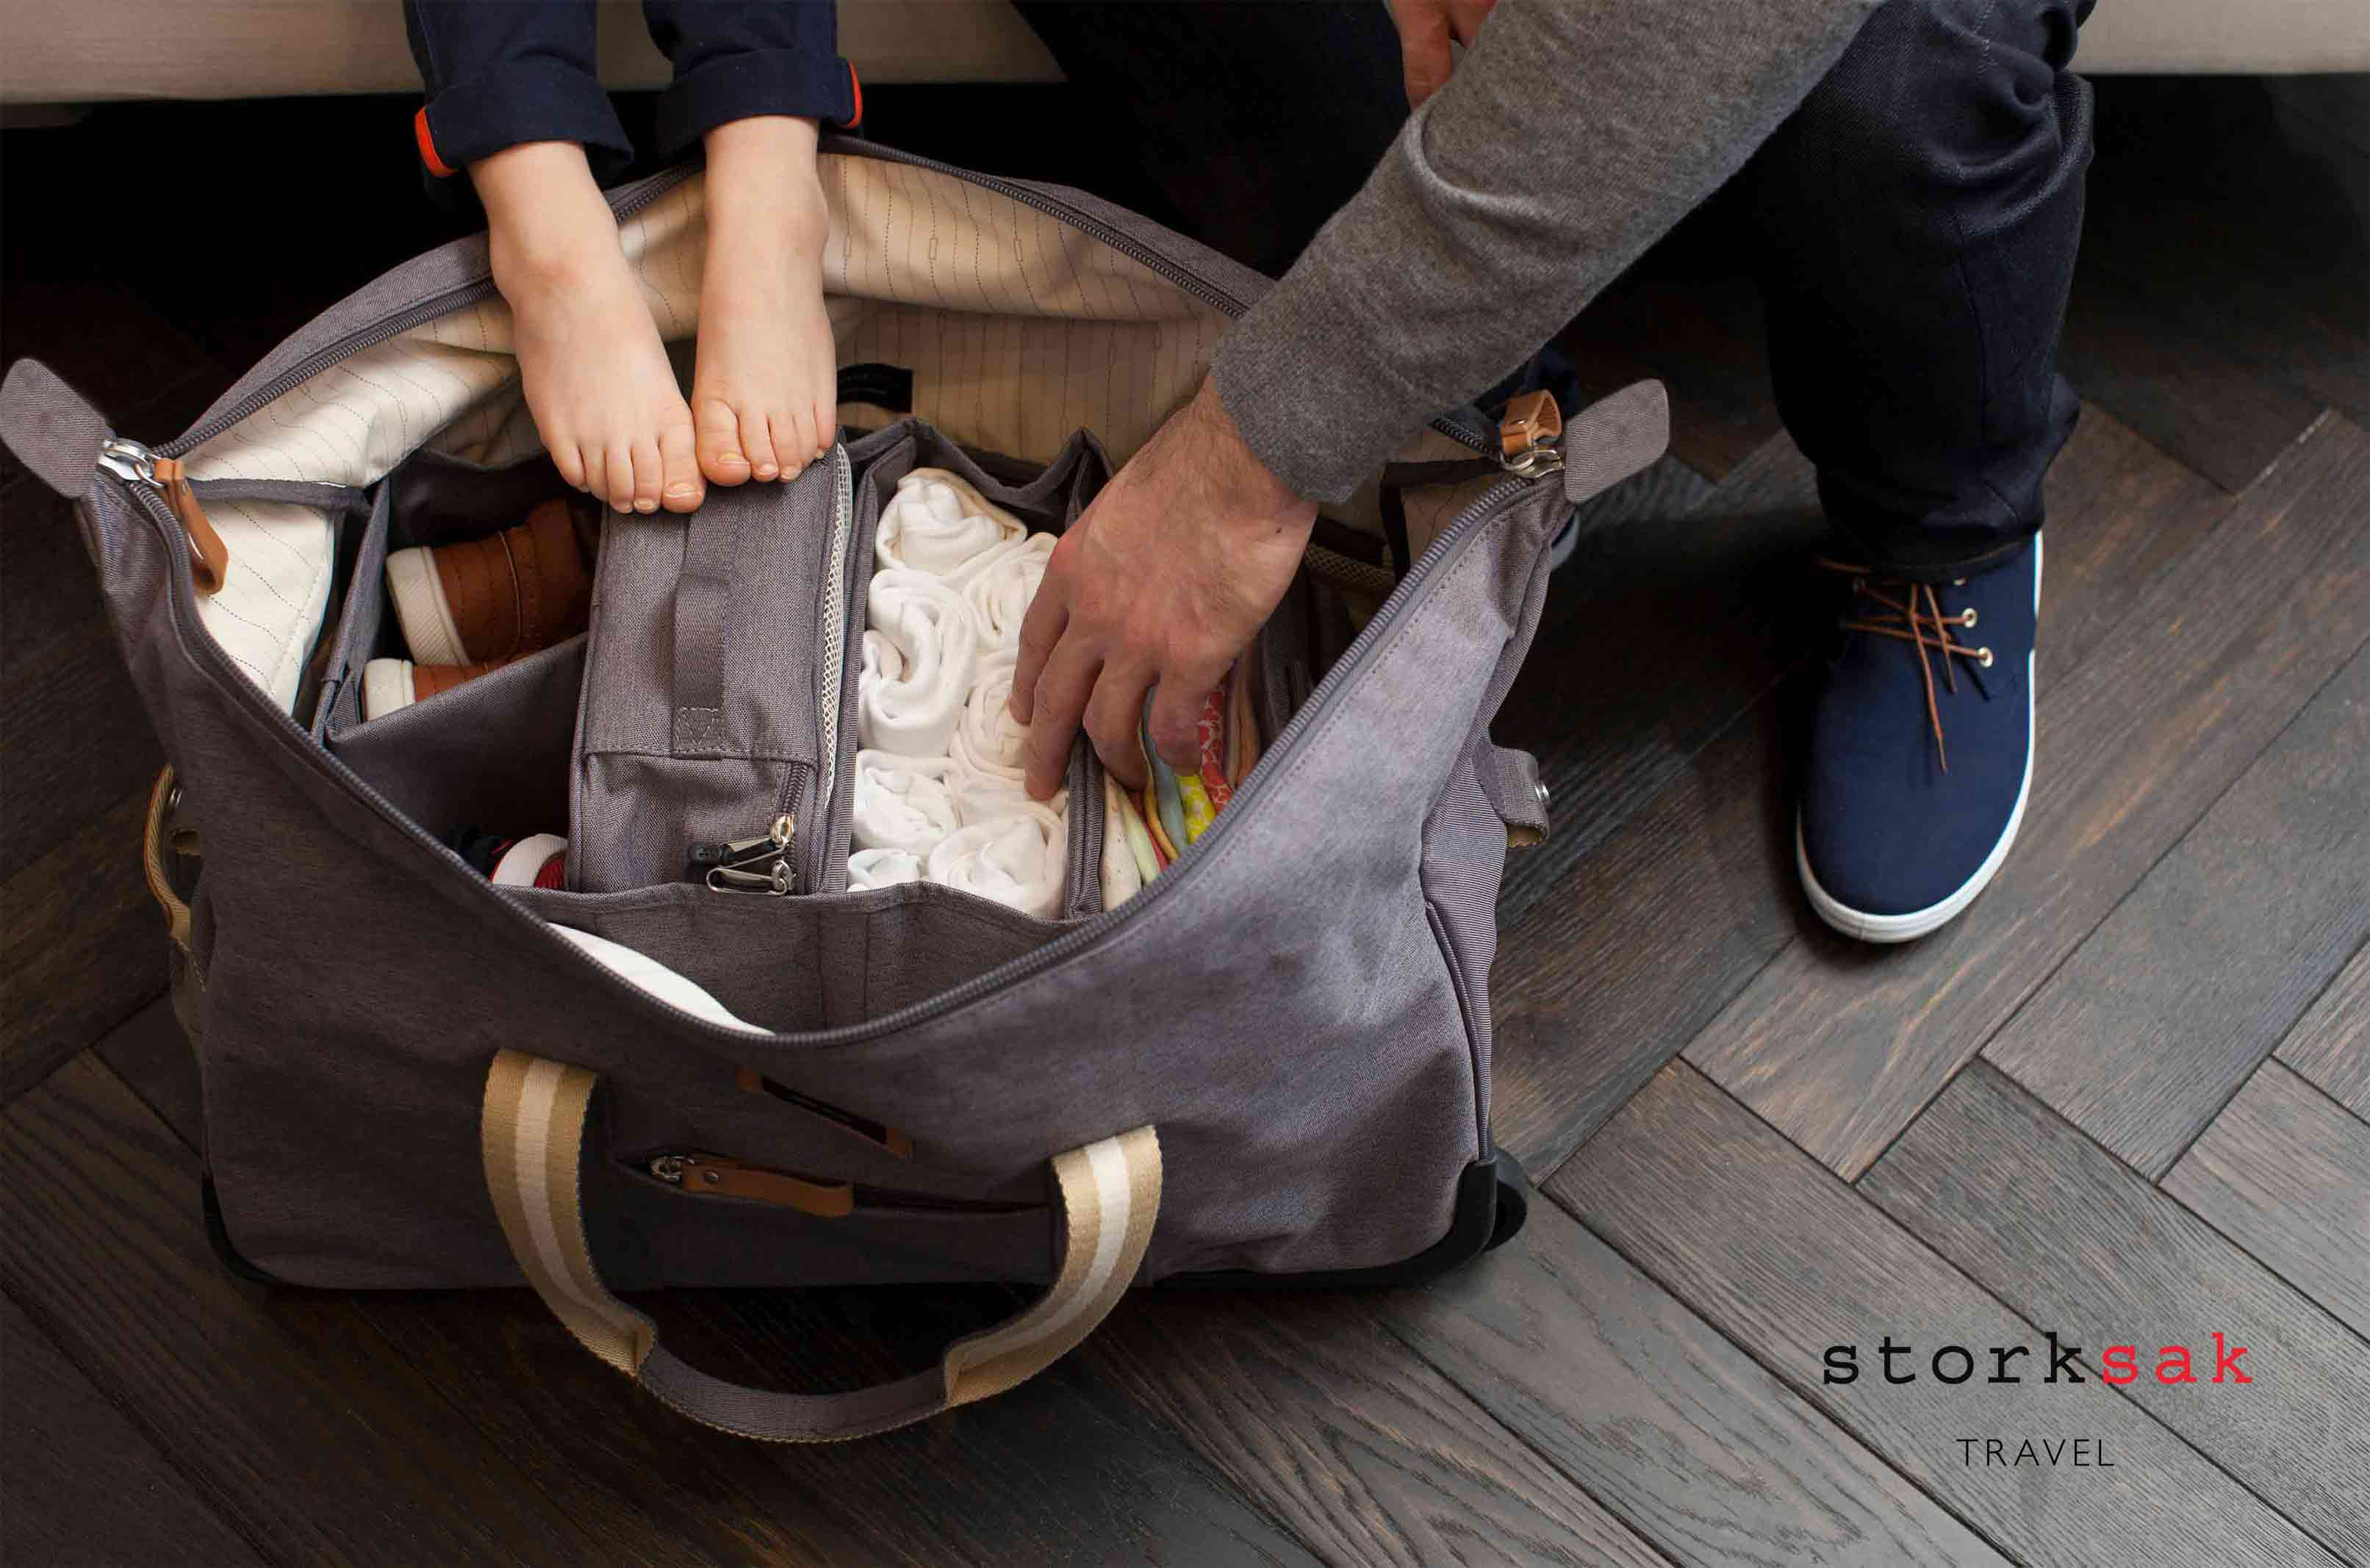 Storksak Travel Cabin Carry-on Grey hospital bag open on floor with child and model | Maternity hospital bag | baby accessories |Storksak - Award-winning Baby Changing Bags & Accessories